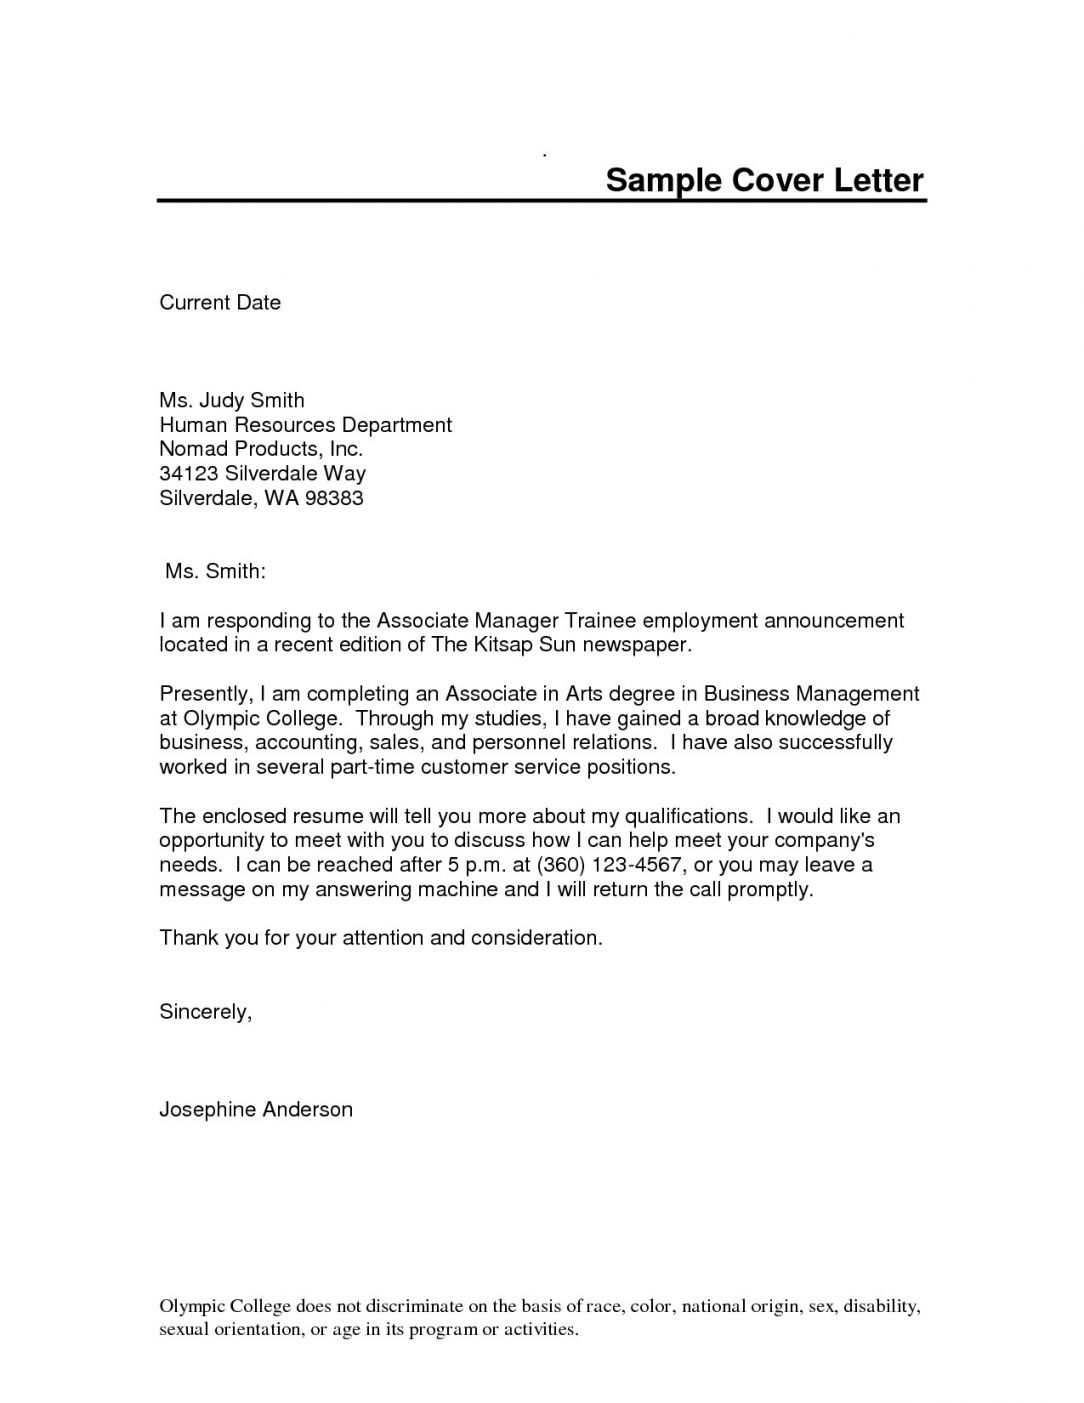 Neighbour Dispute Letter Template 2020 Resume Cover Letter